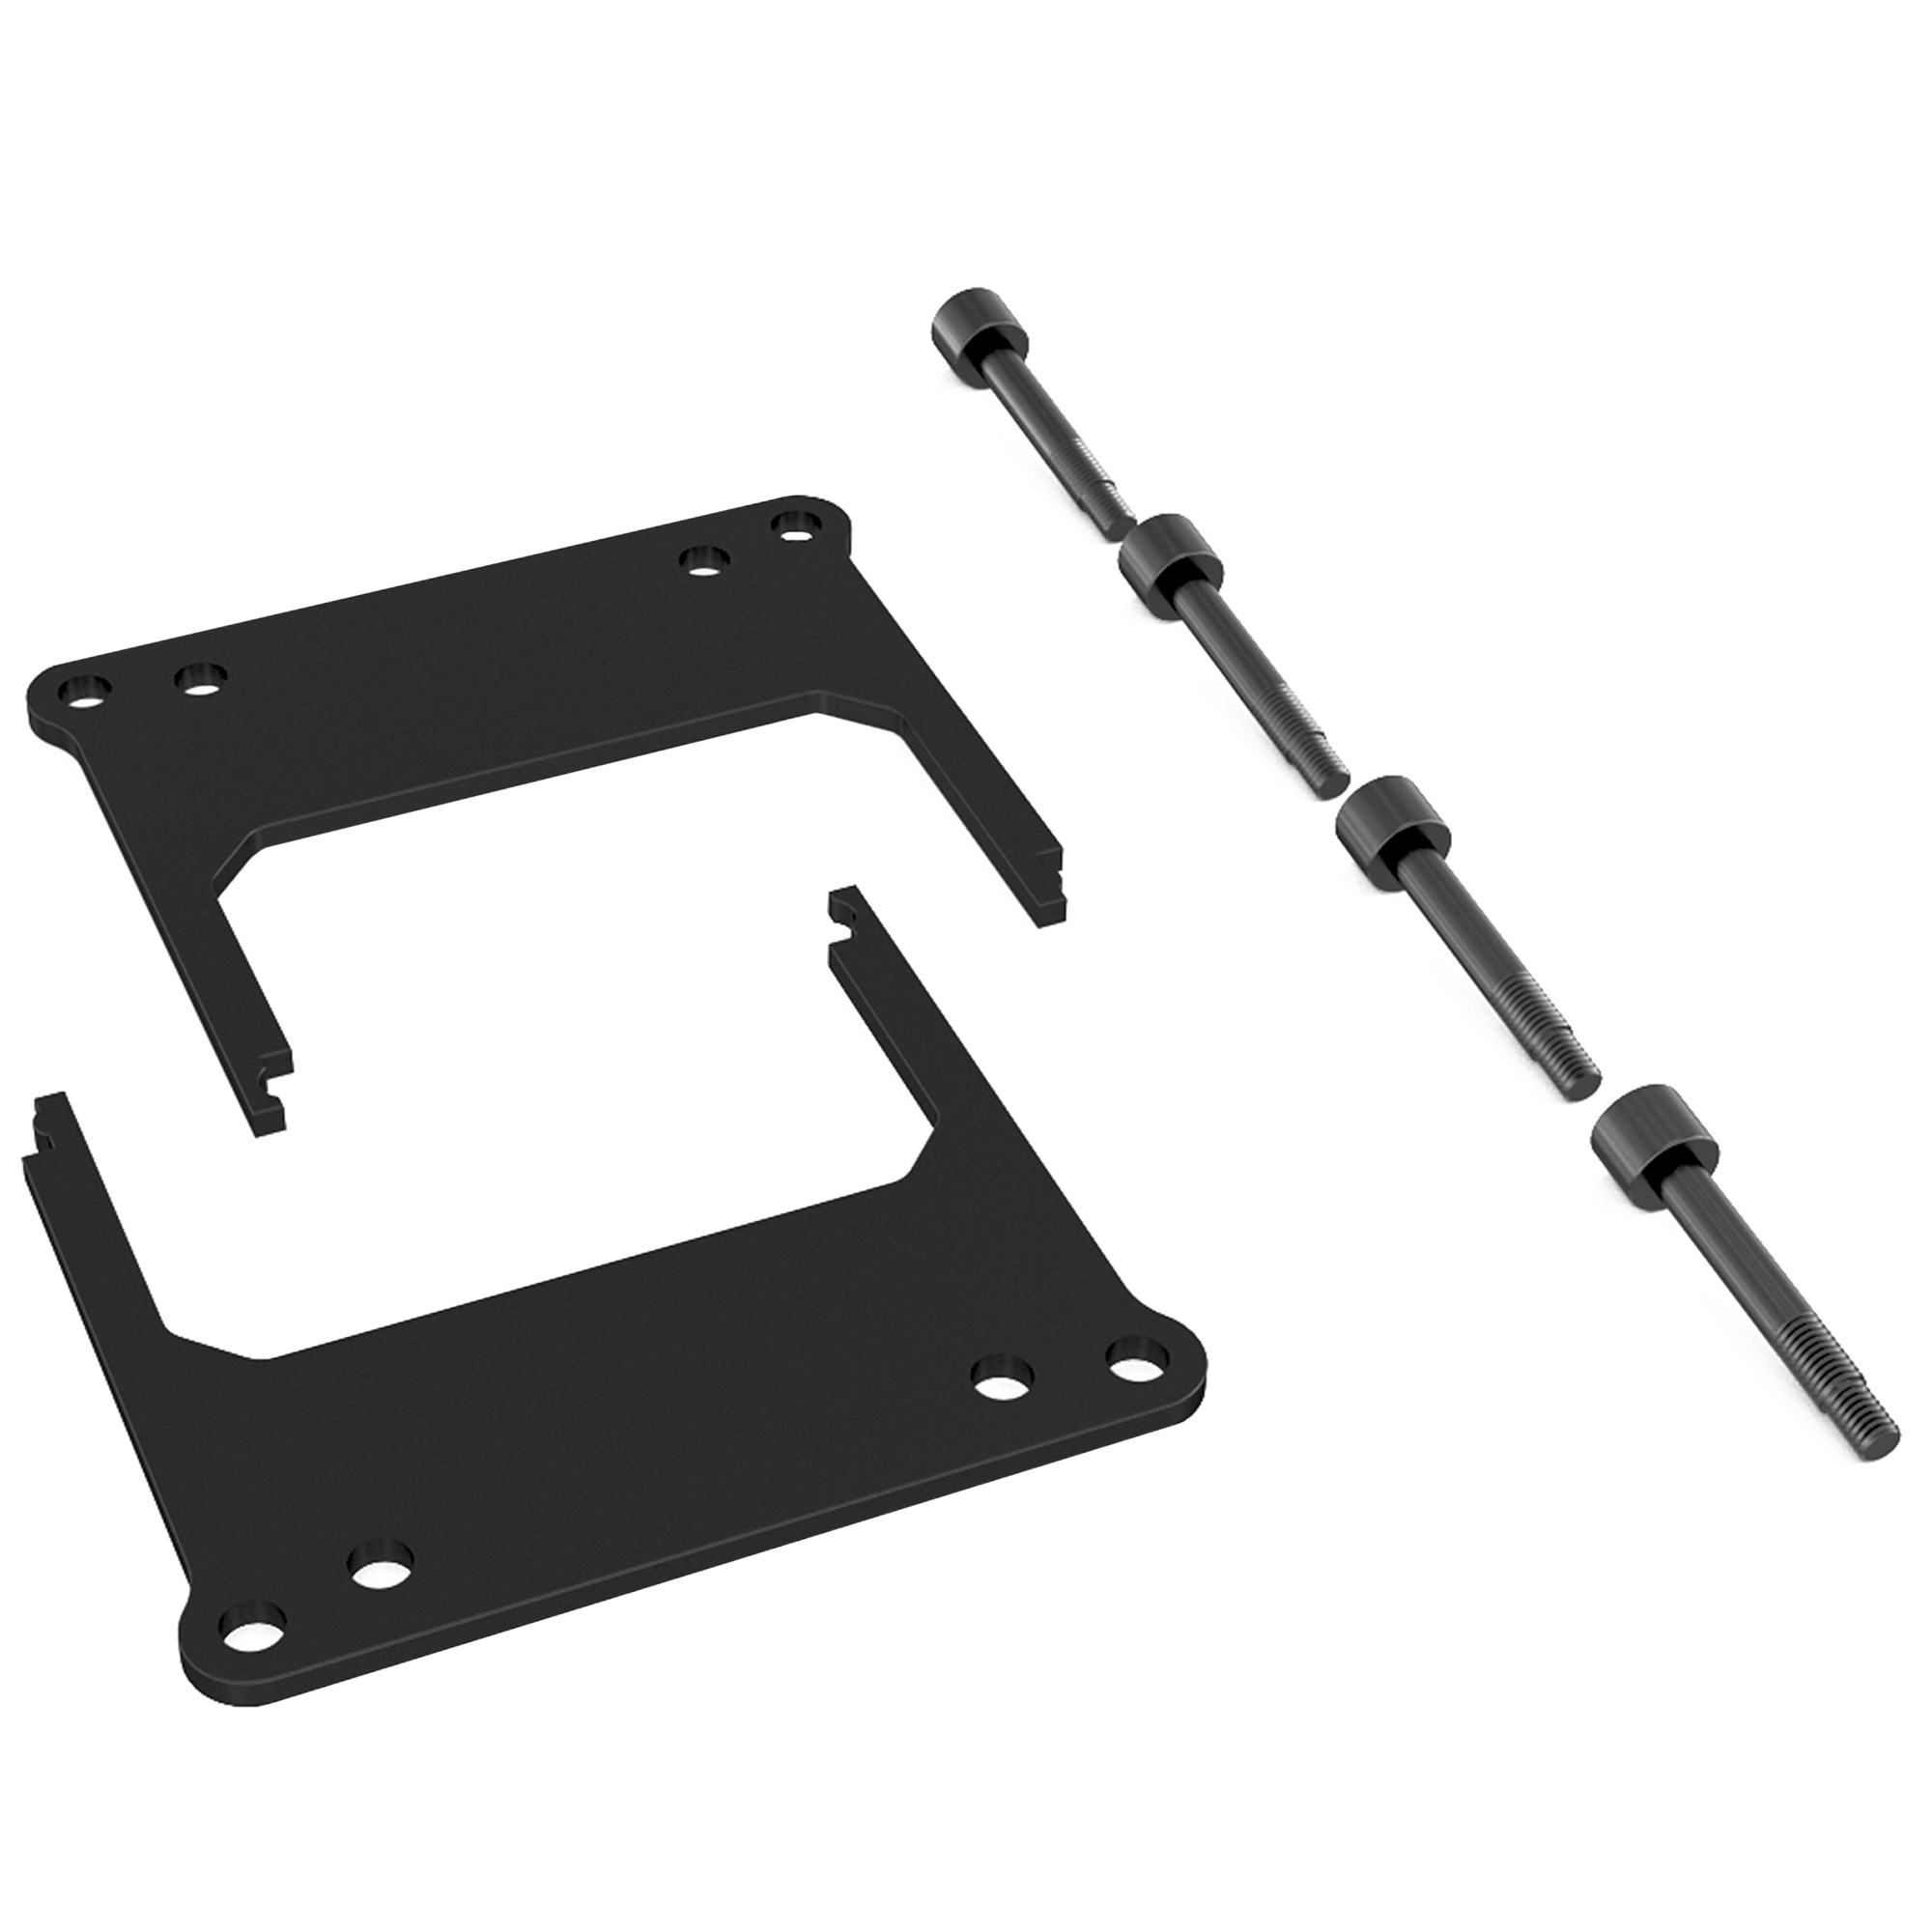 be quiet! Mounting Kit for be quiet! Silent Loop tbv AMD TR4